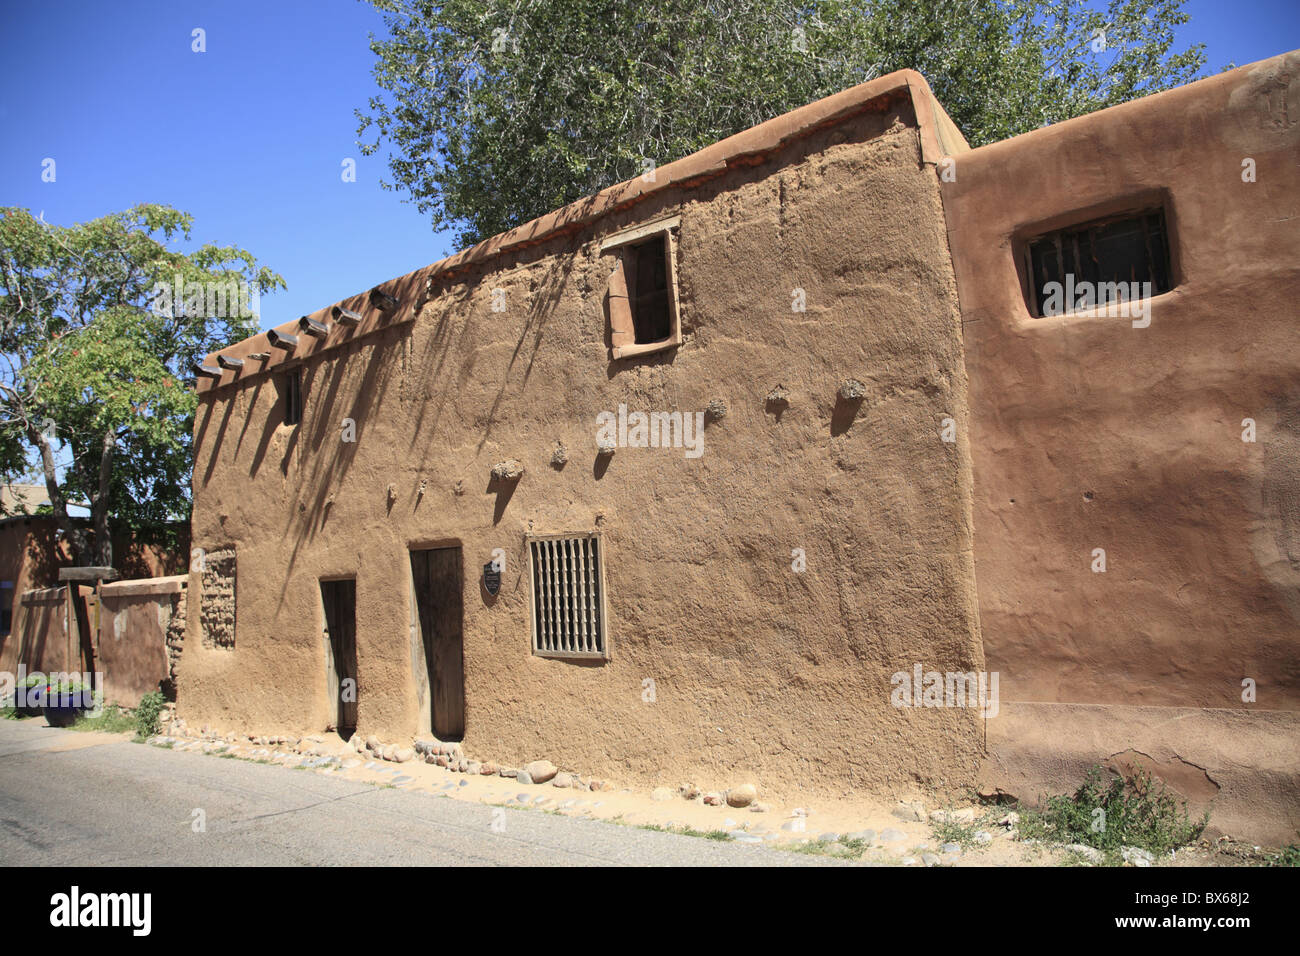 Oldest house in the United States, now a museum, Santa Fe